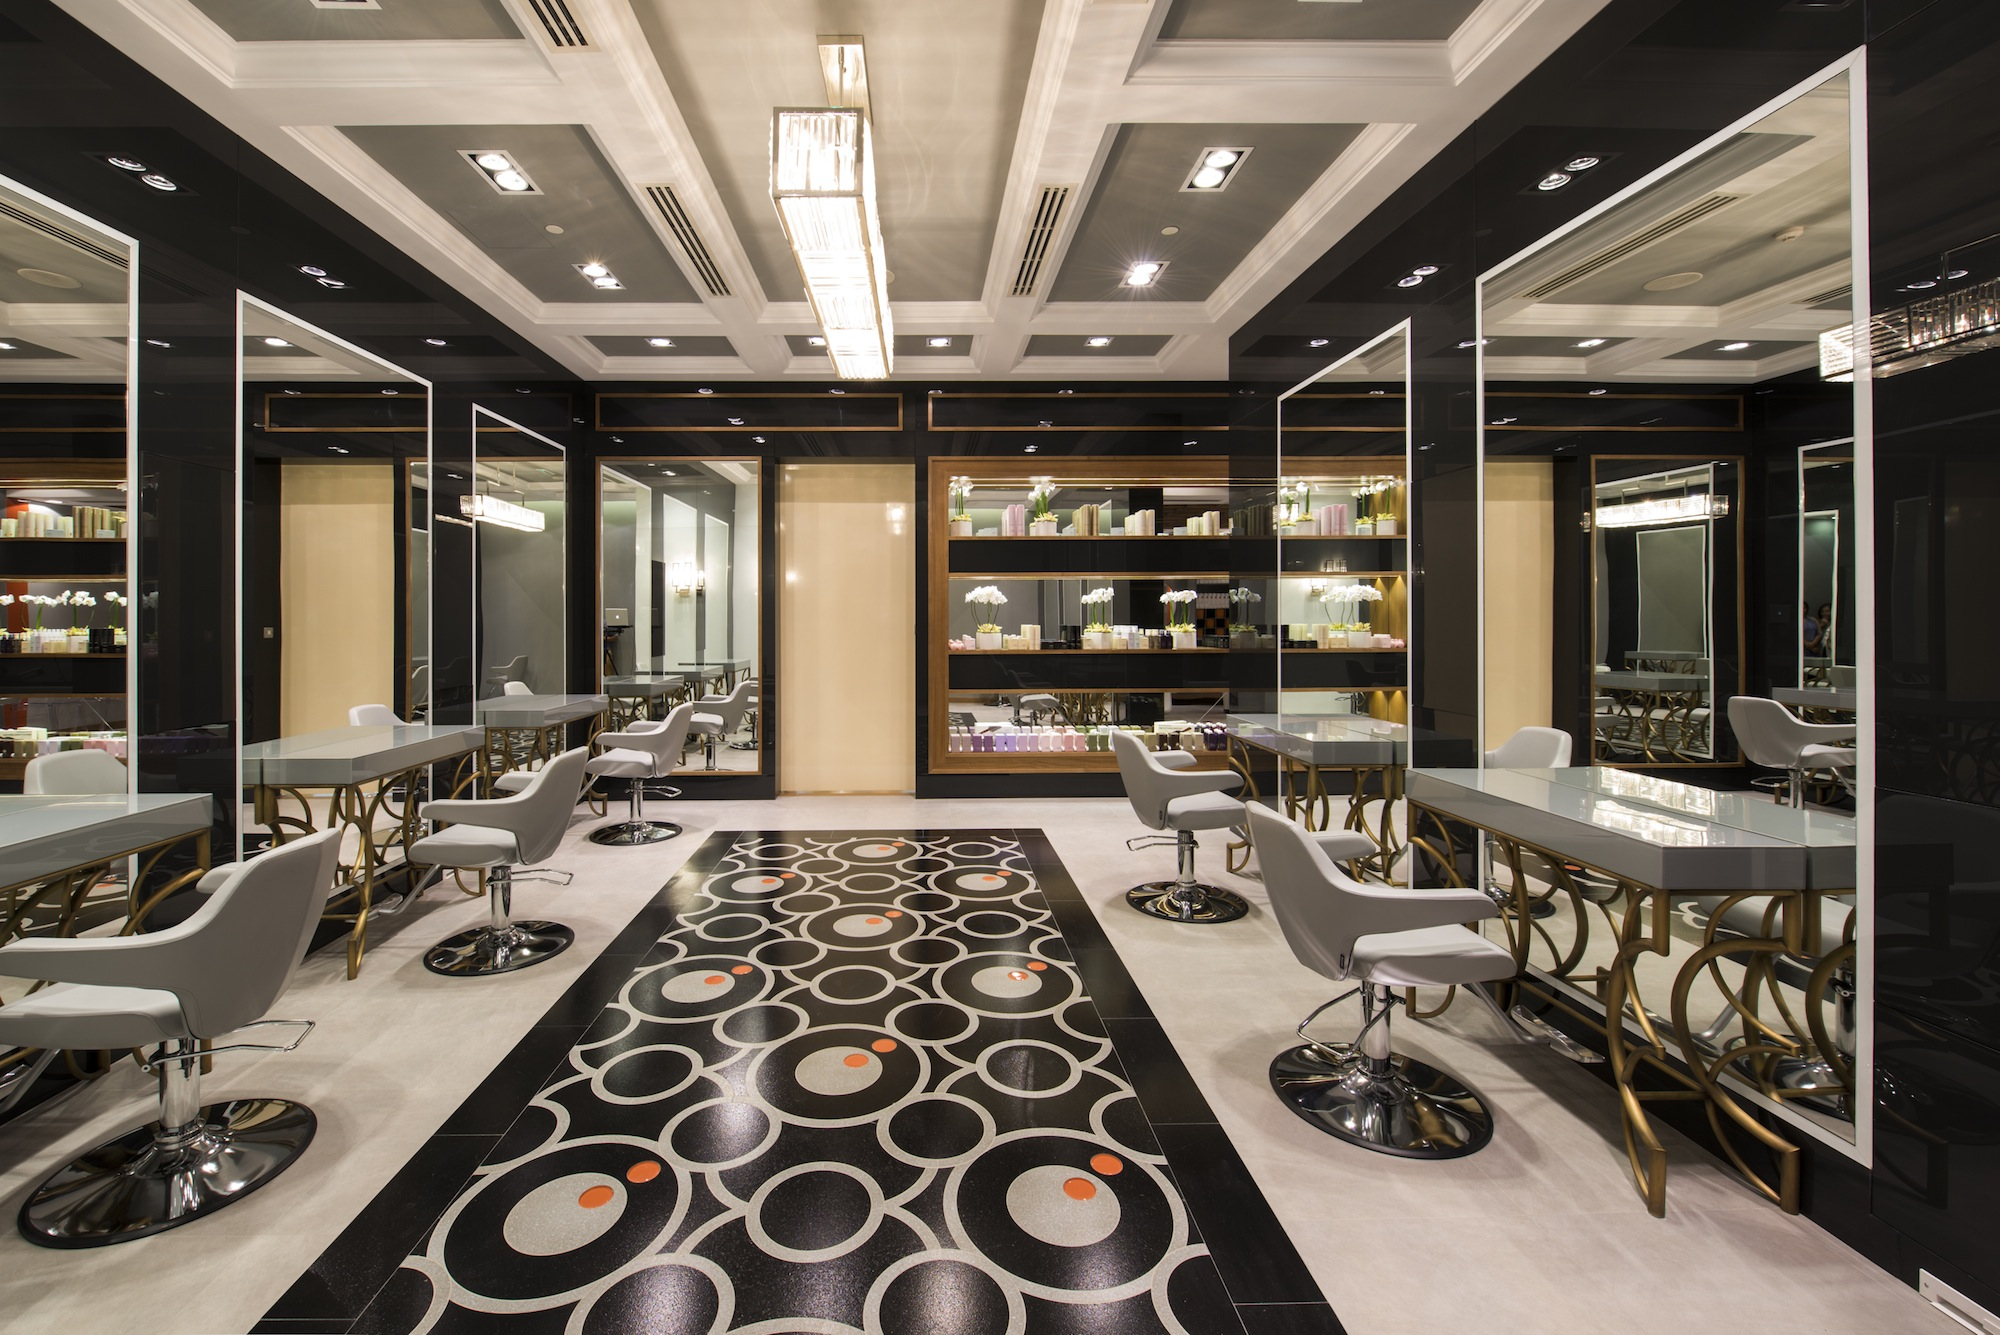 Spa's, Beauty Salons, and Tourism